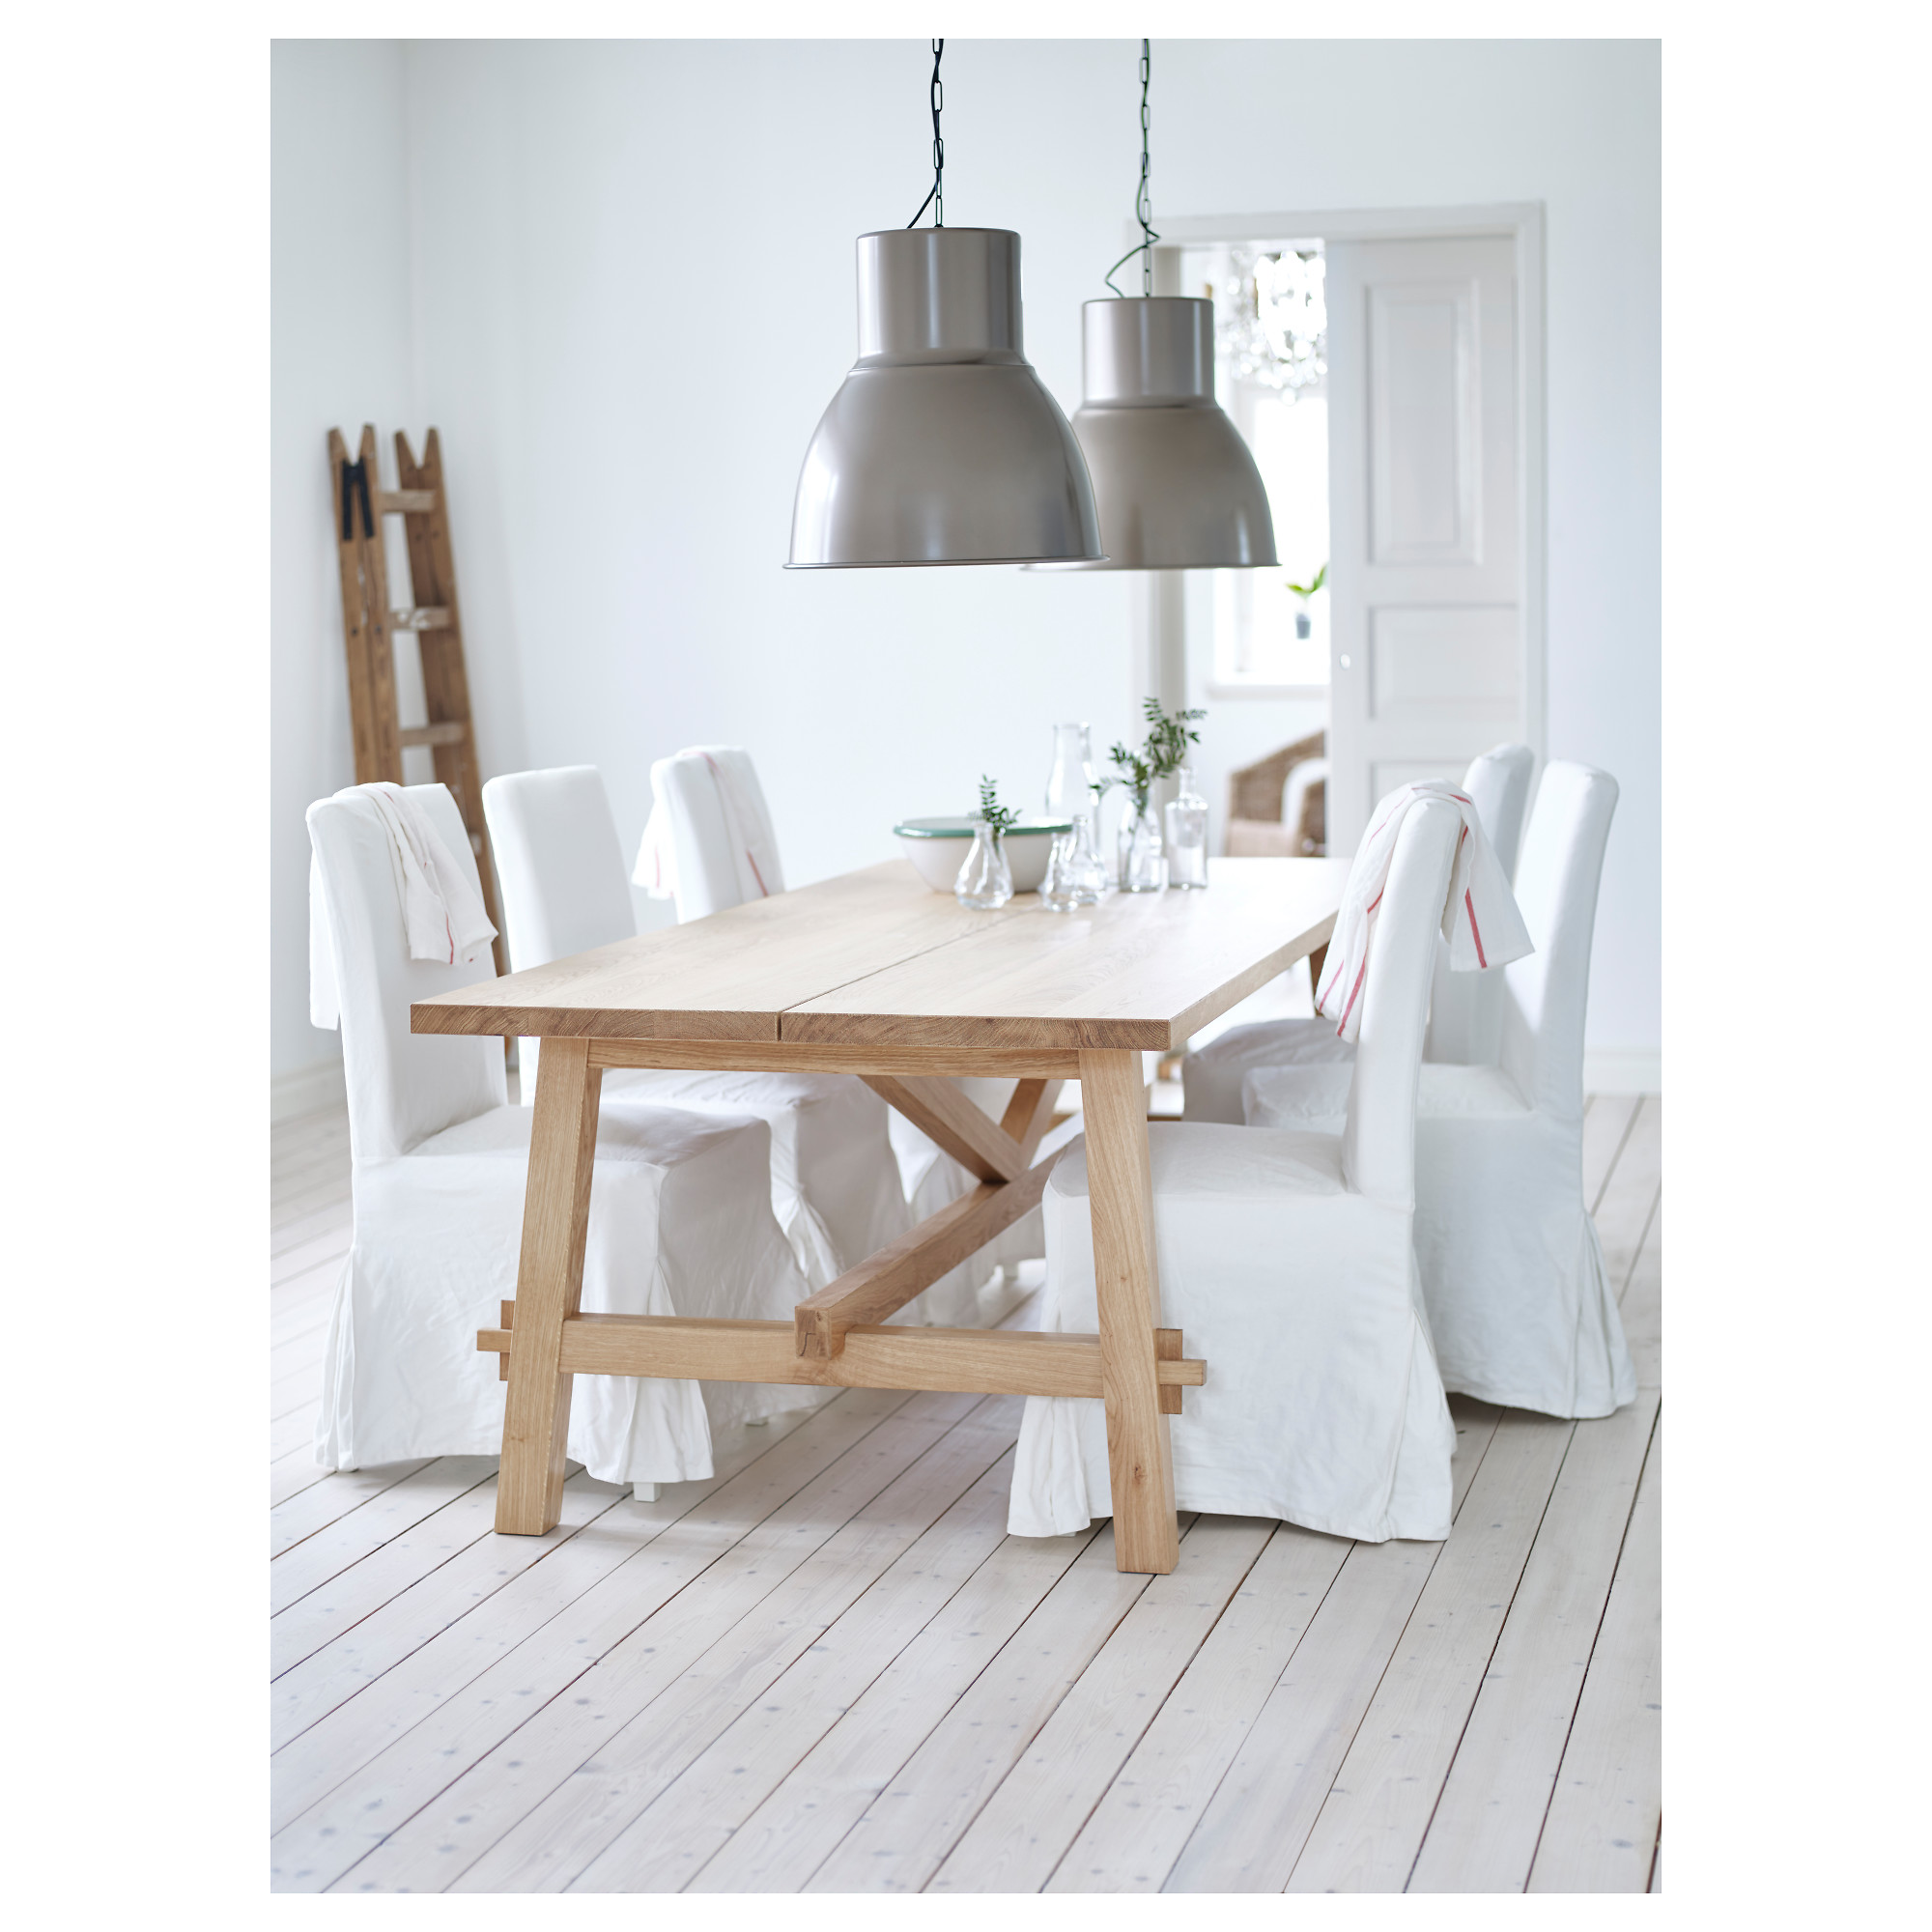 . M CKELBY Table   IKEA